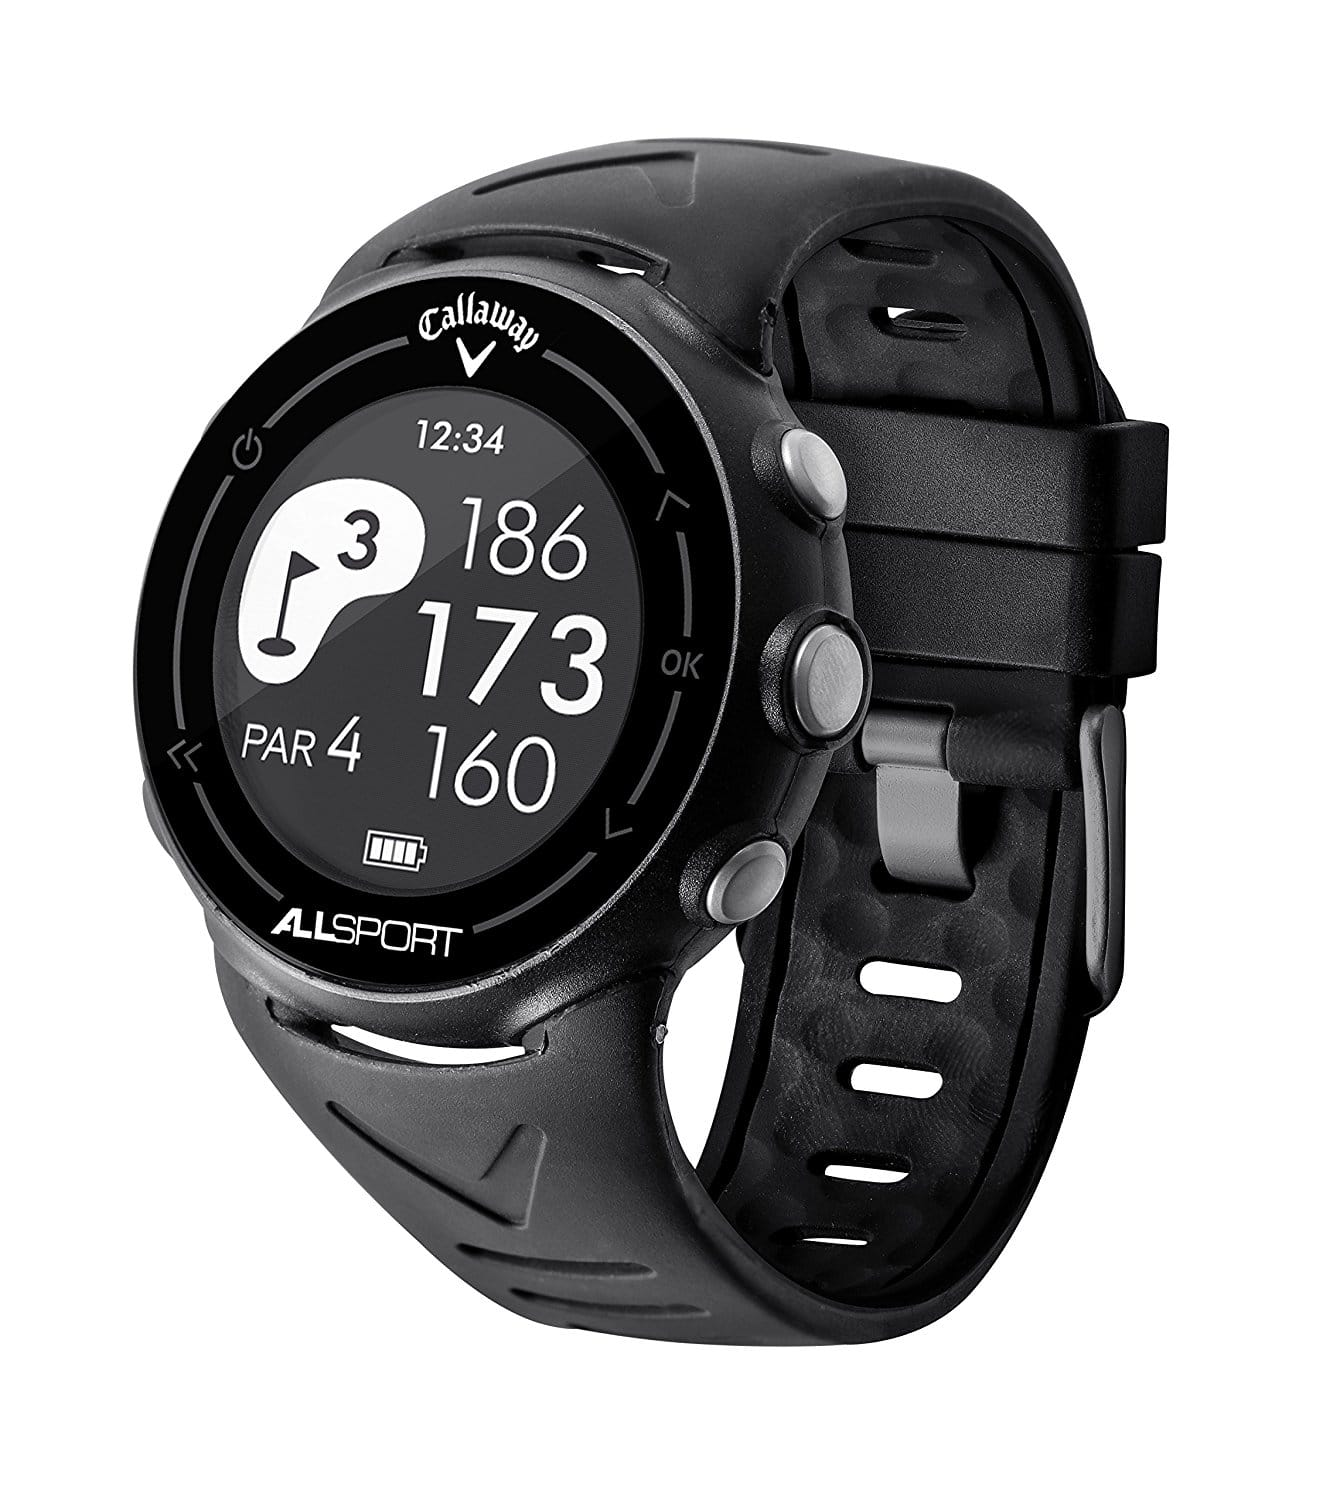 callaway allsport gps golf watch doubles up as a multi sport tracker - Callaway Allsport GPS golf watch doubles up as a multi-sport tracker